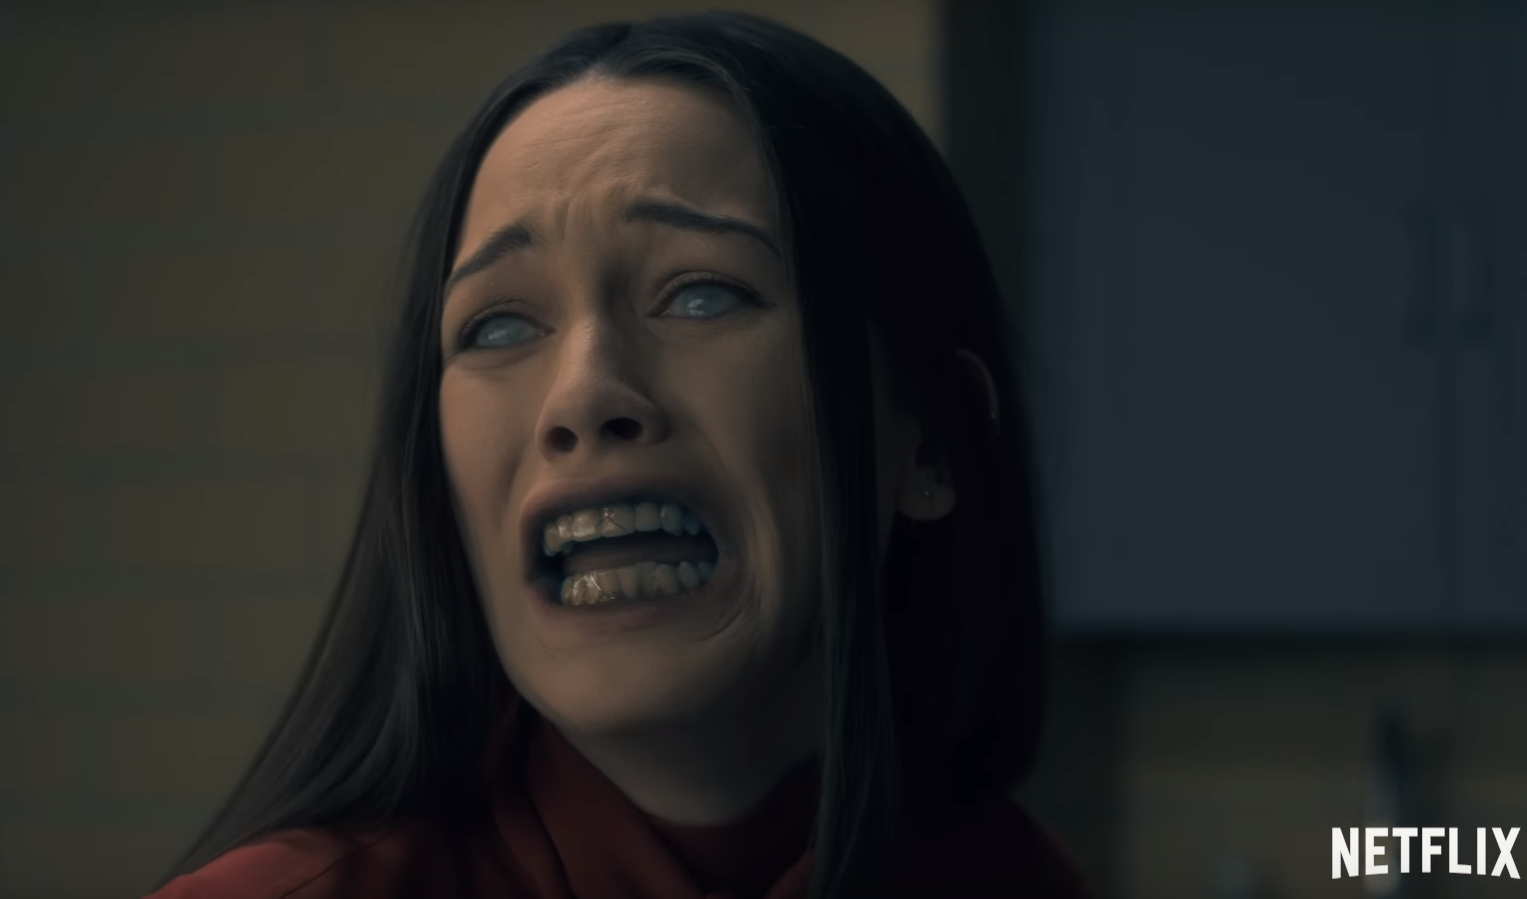 Trailer Netflix S The Haunting Of Hill House Looks Like The Scary Horror Series To Watch This Halloween Bloody Disgusting